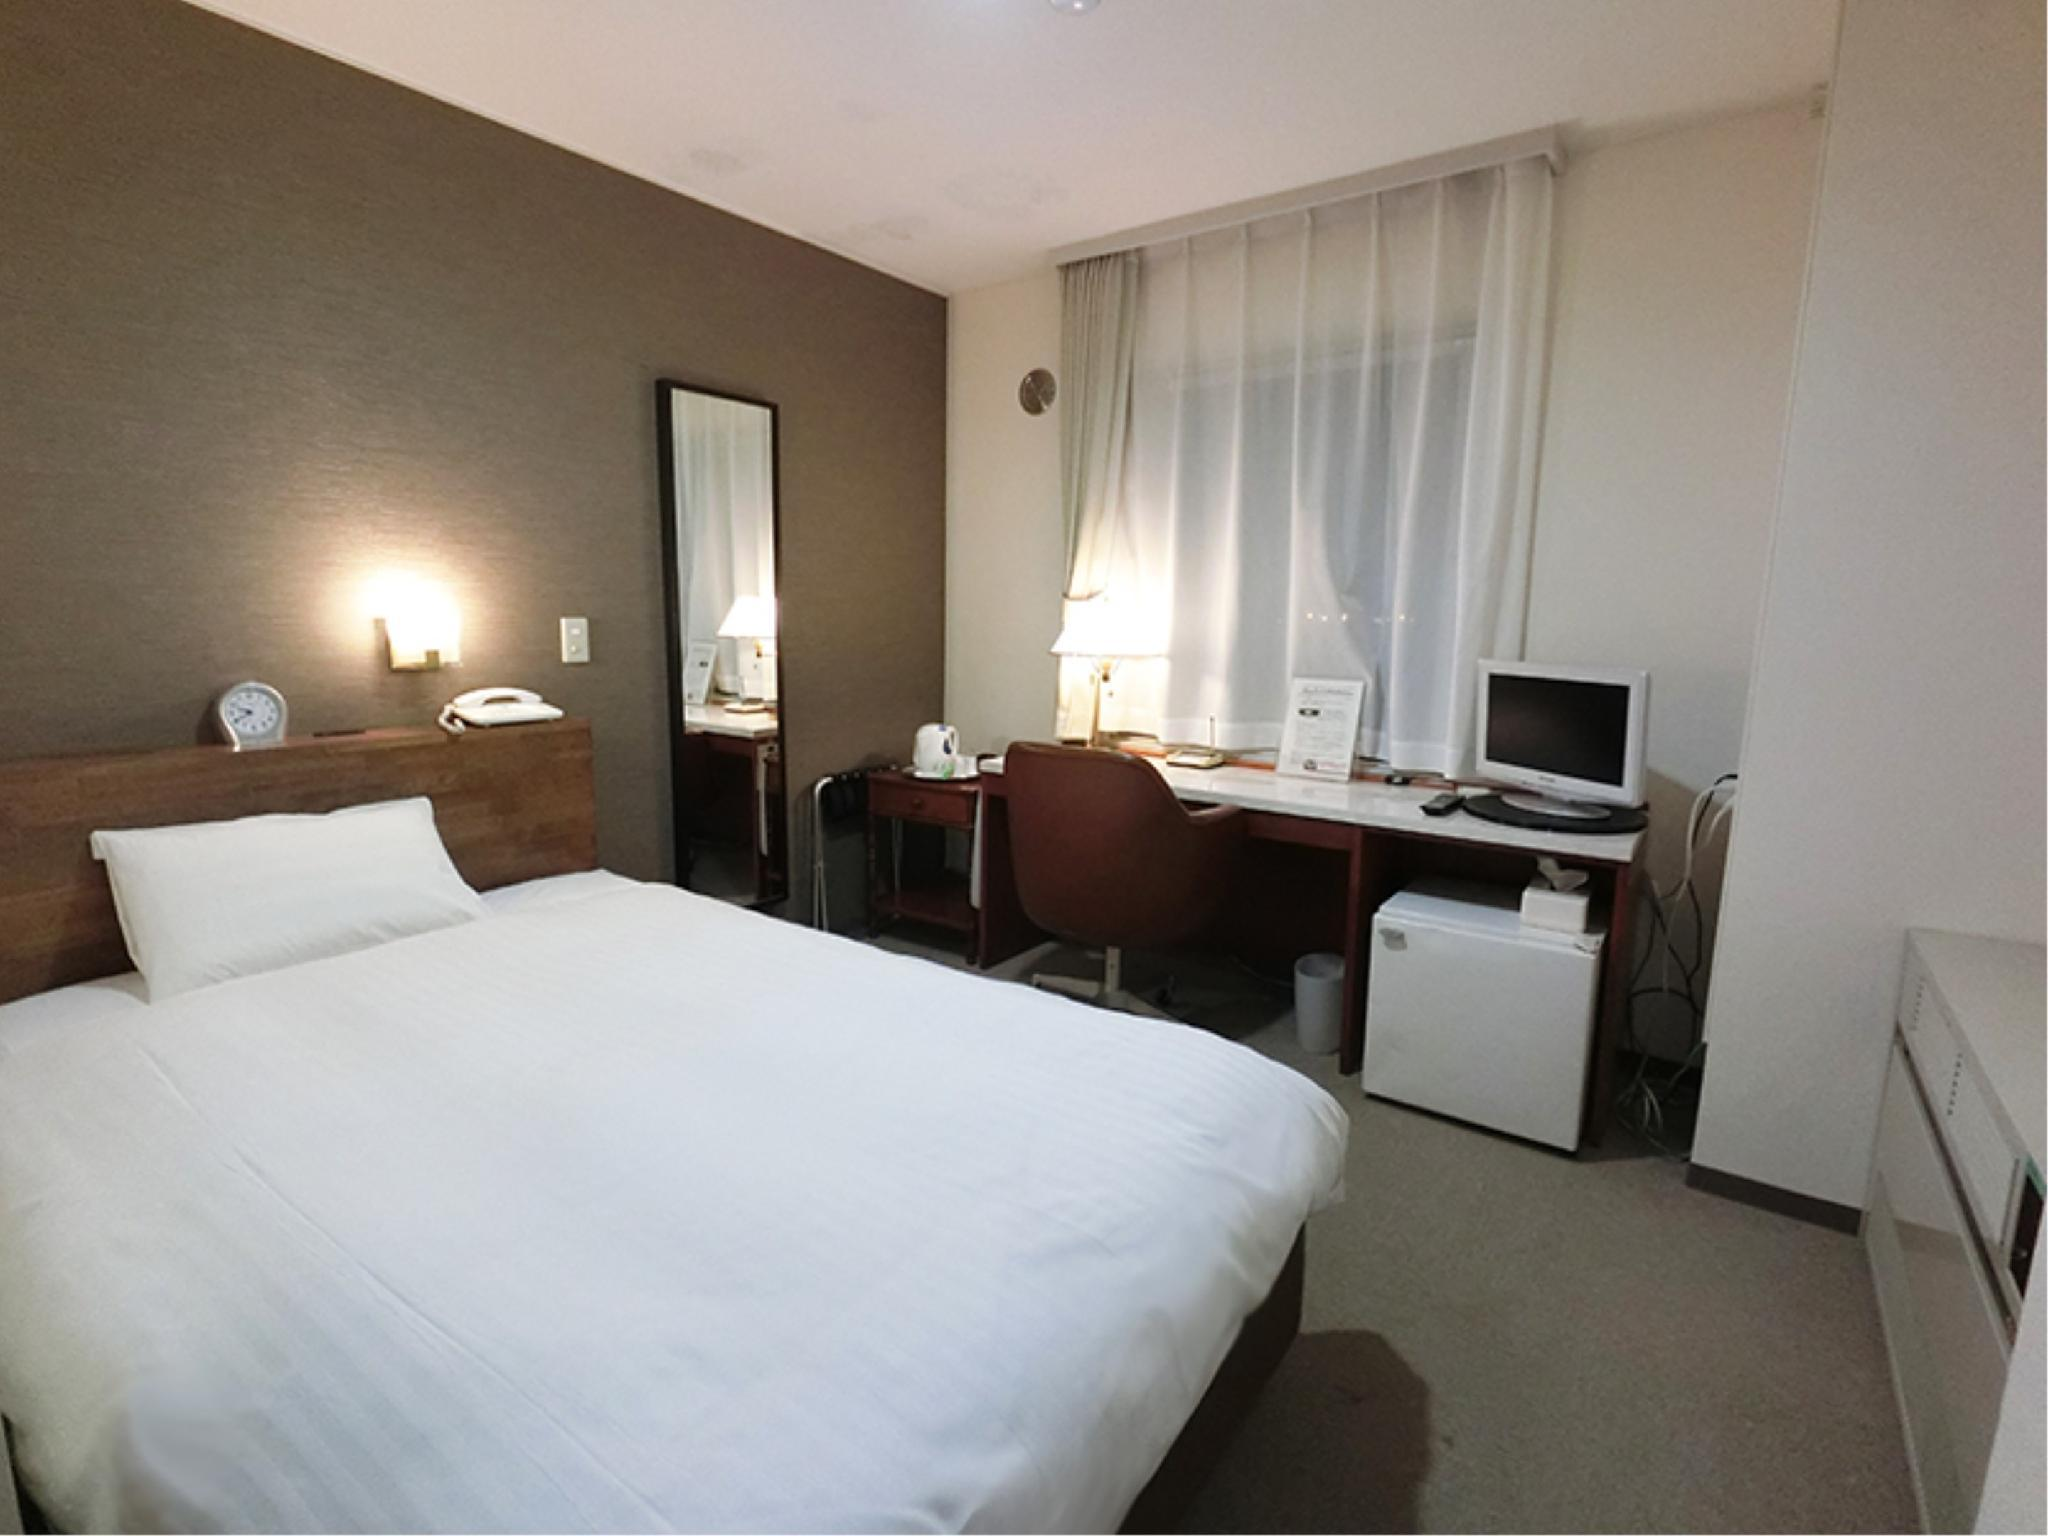 摩登双人中床房 (Moderate Semi-double Room)